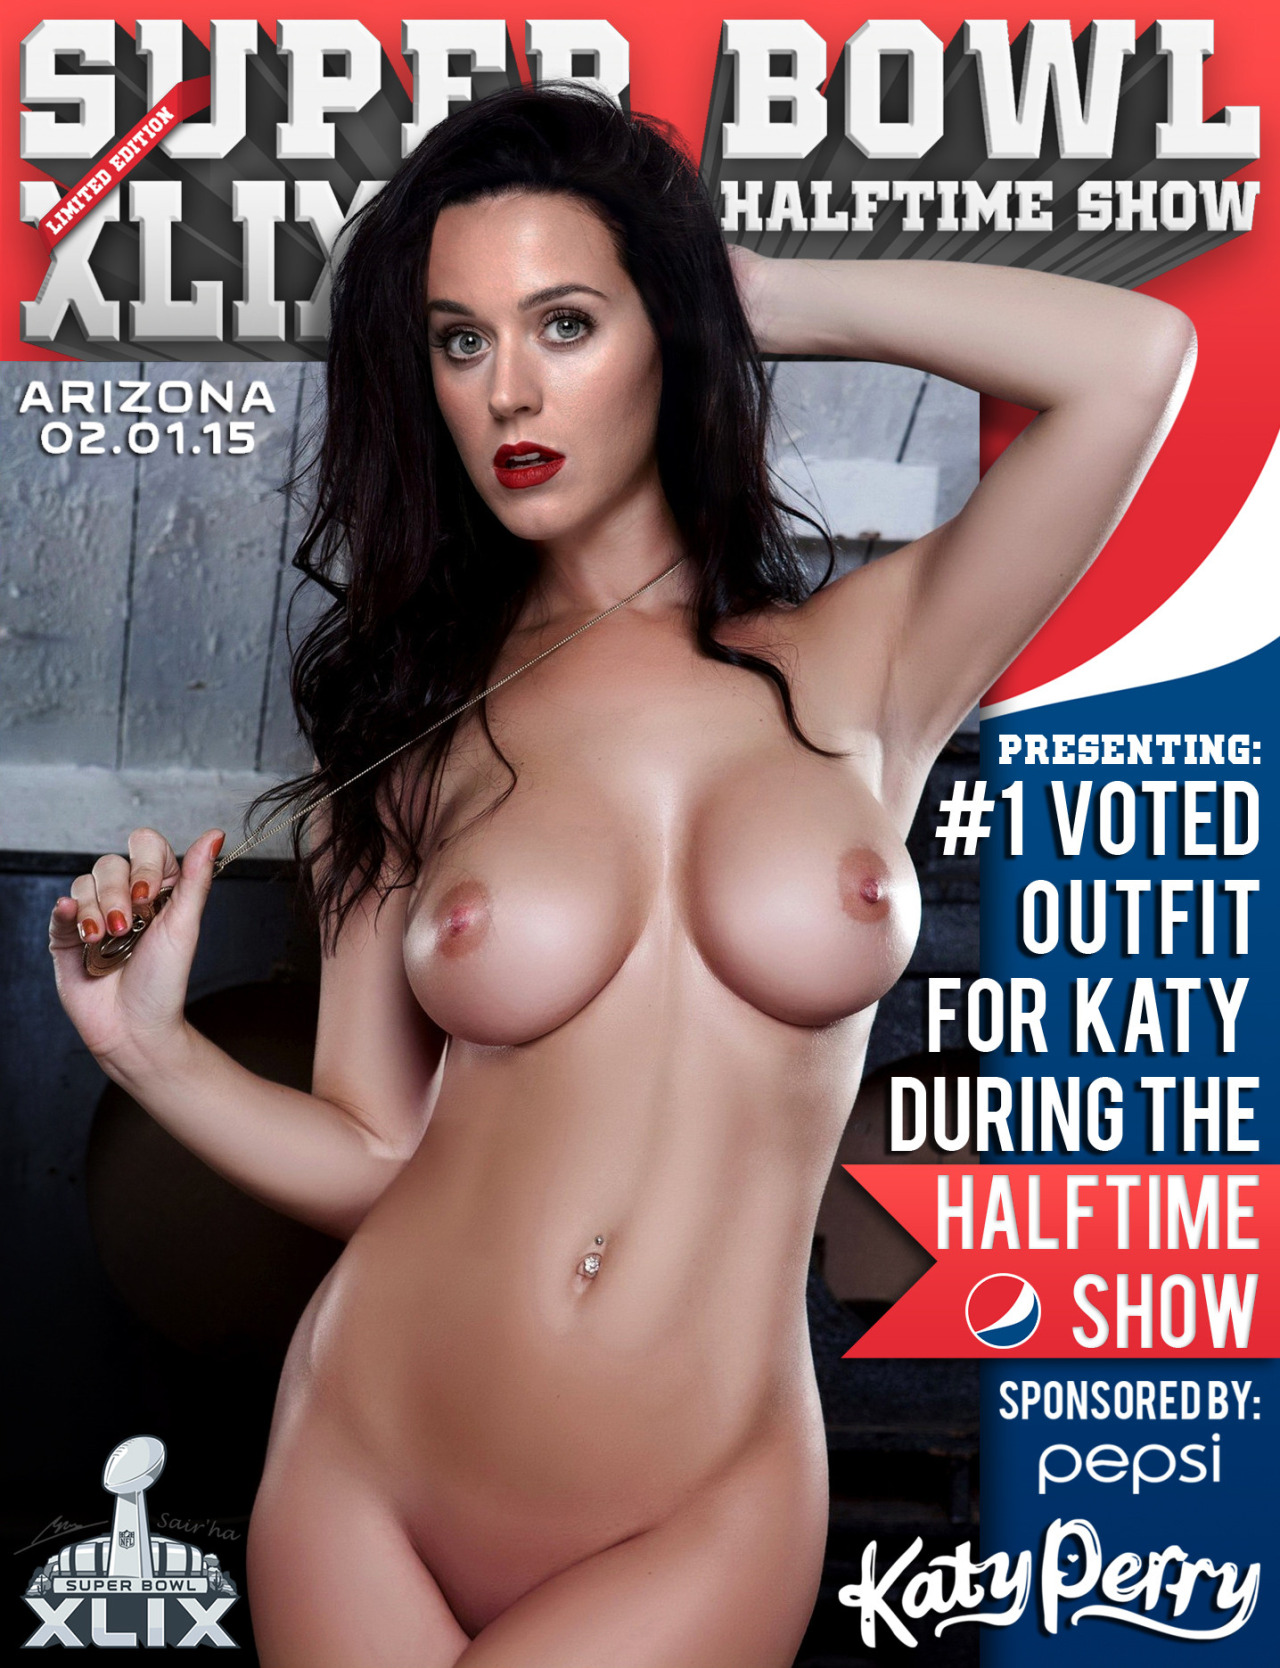 Katy perry fake nude